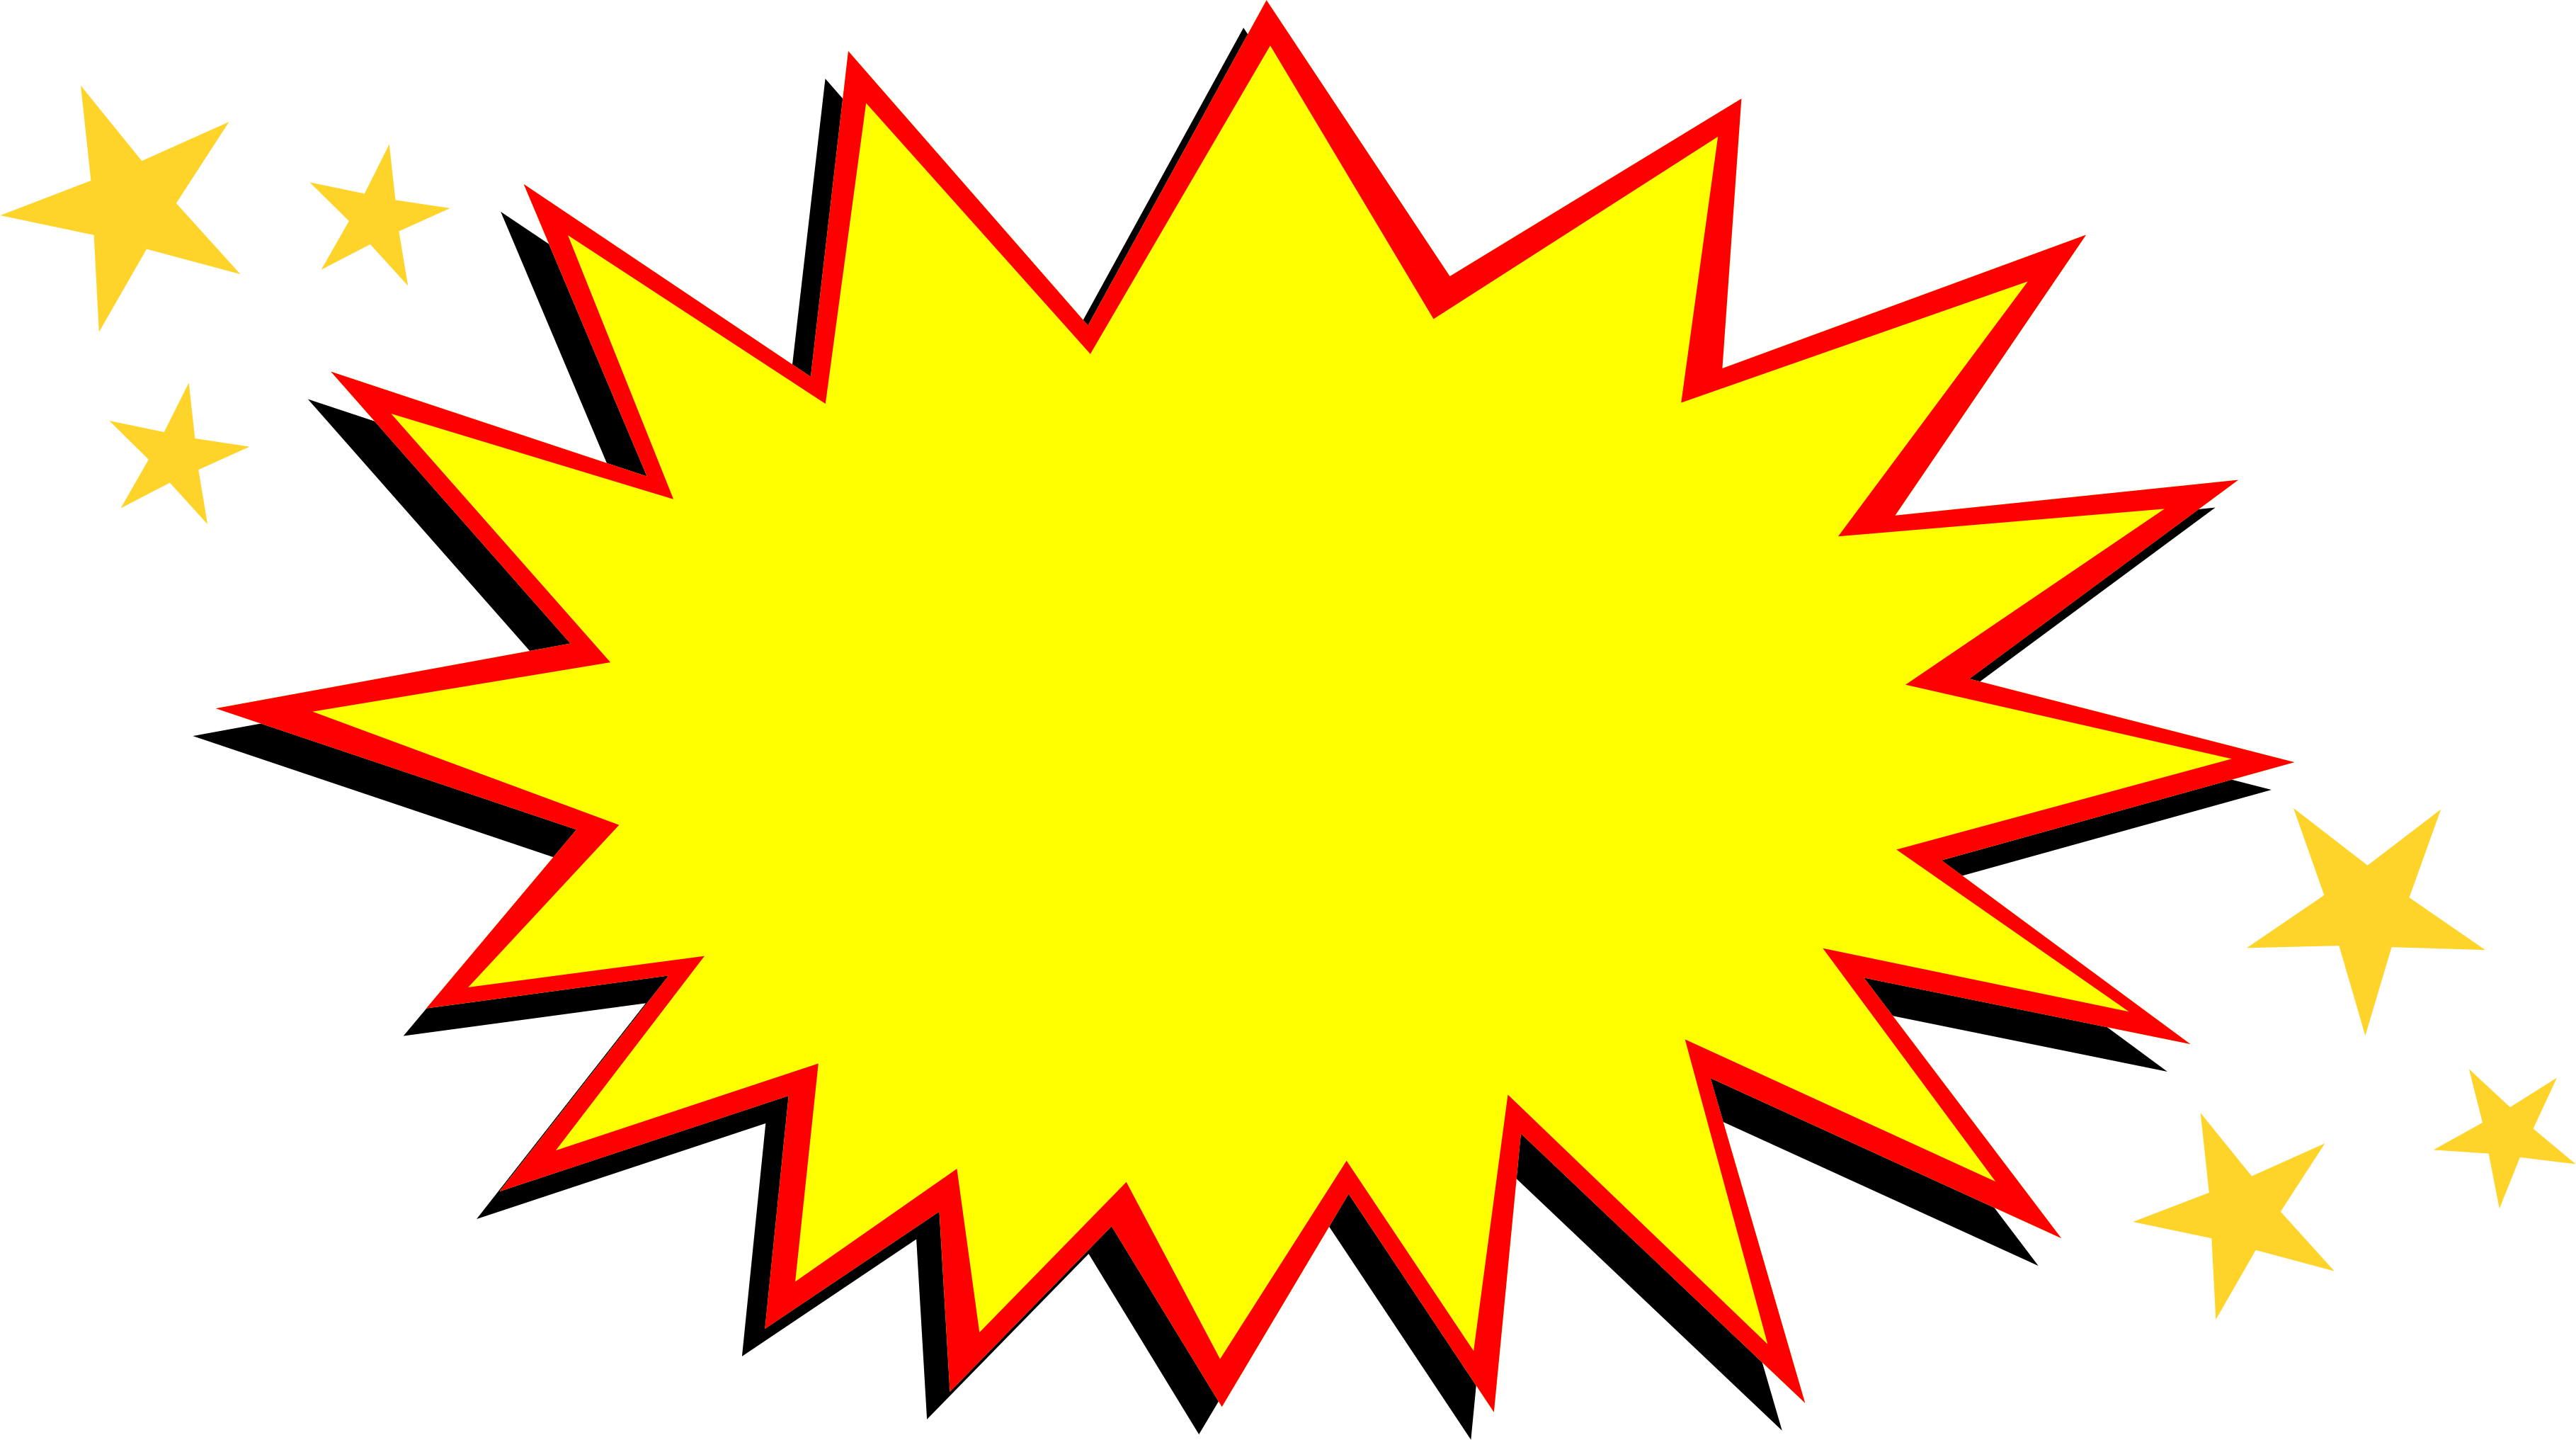 explosion clipart png 10 clipart station rh clipartstation com clip art explosion bubble clip art explosives